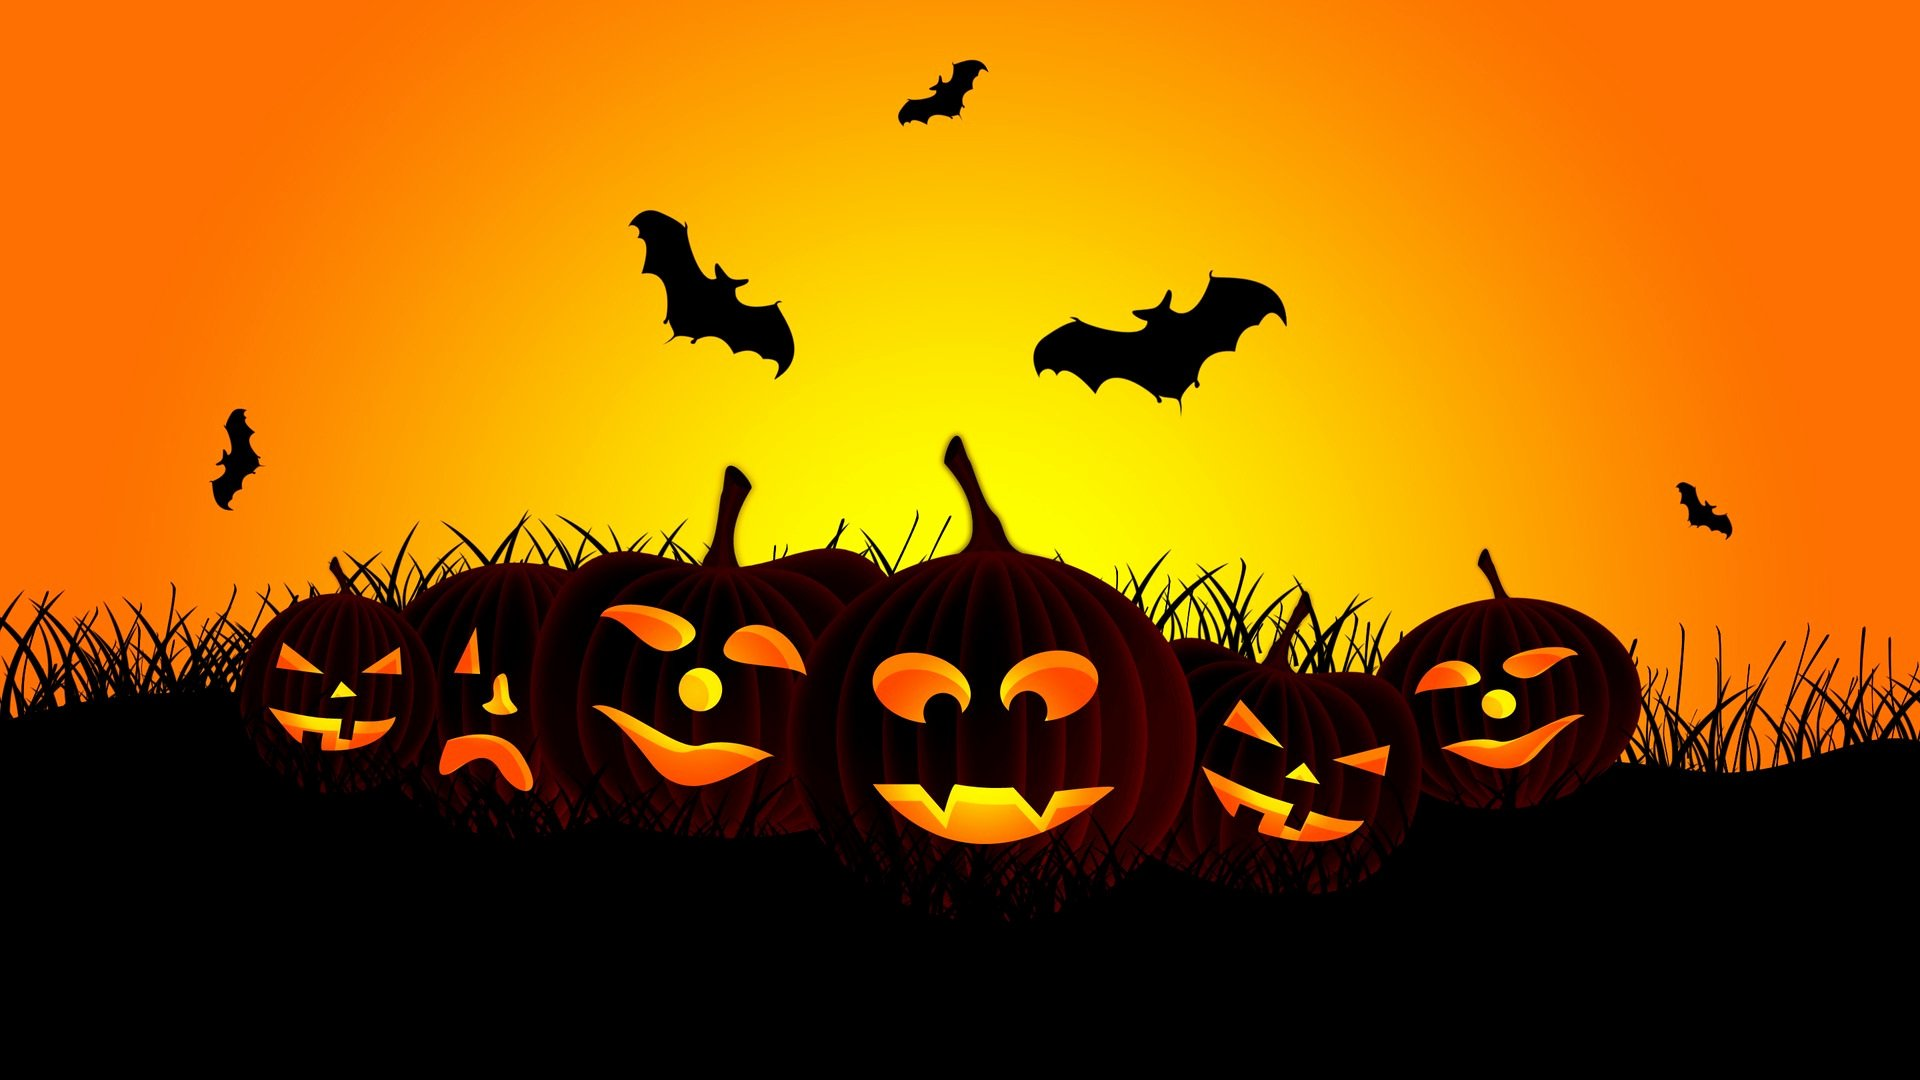 Free Halloween Background Images Inspirational Hd Halloween Backgrounds